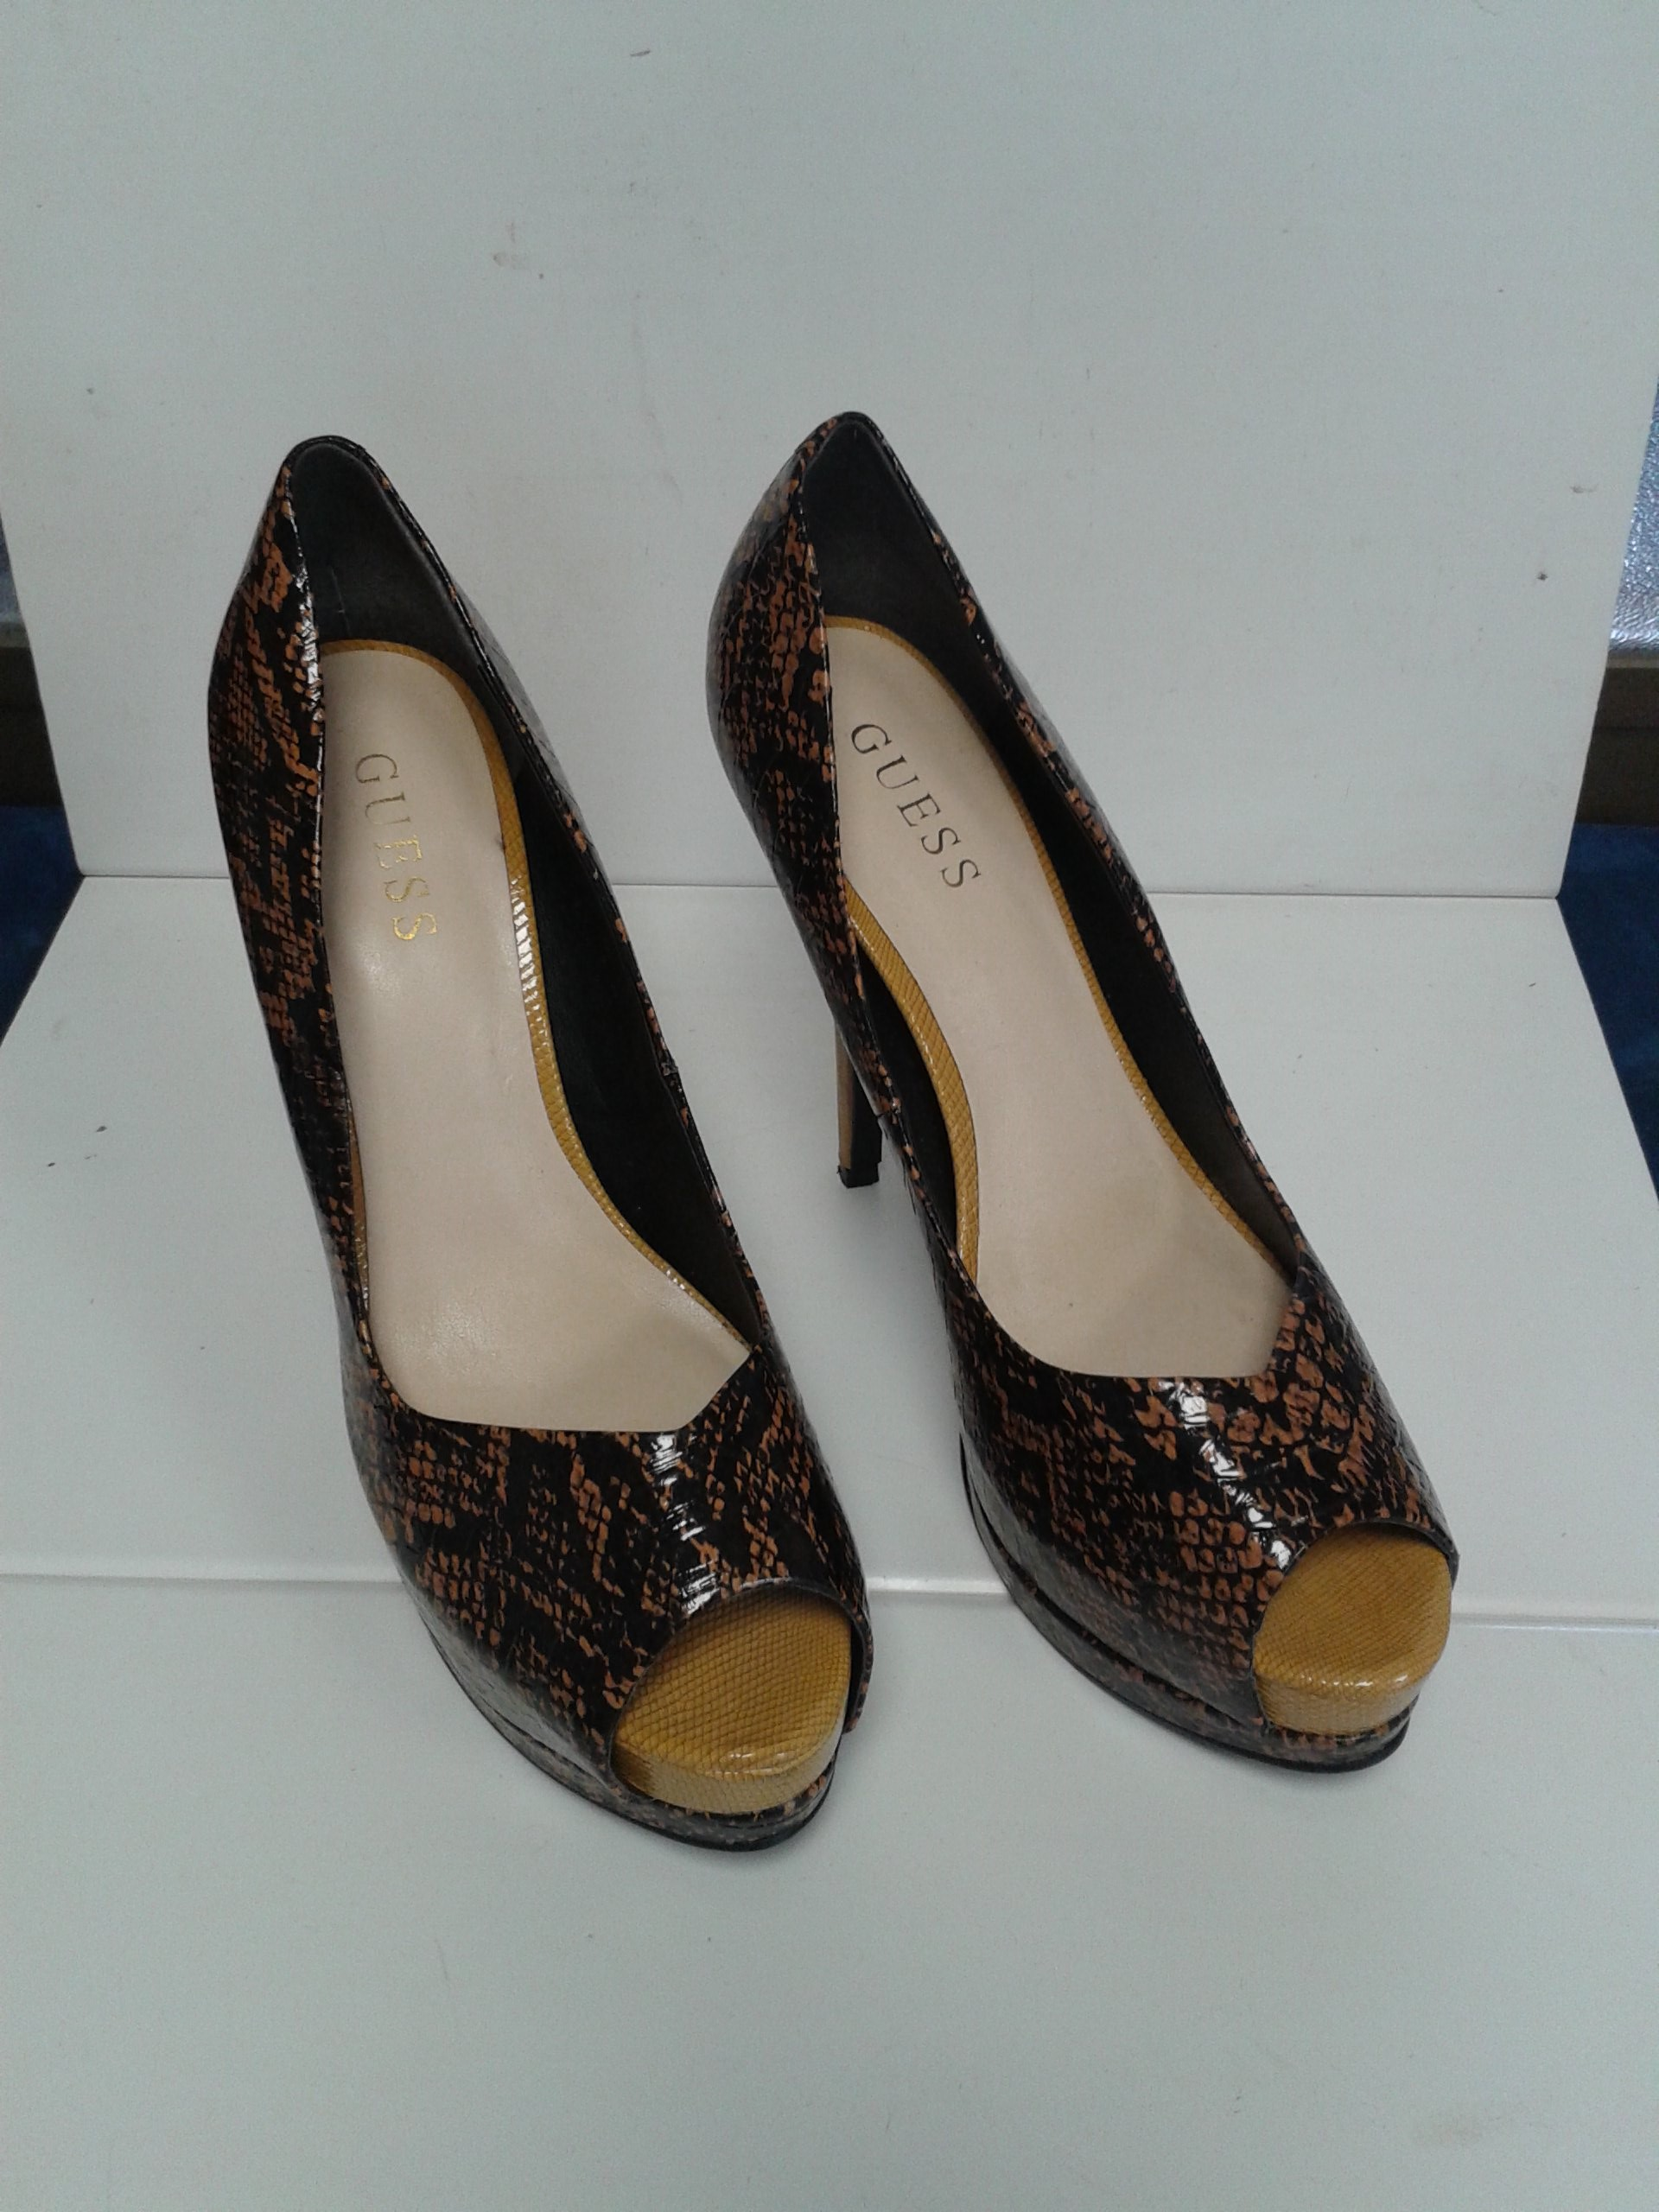 Scarpe donna Guess n. 39 usate